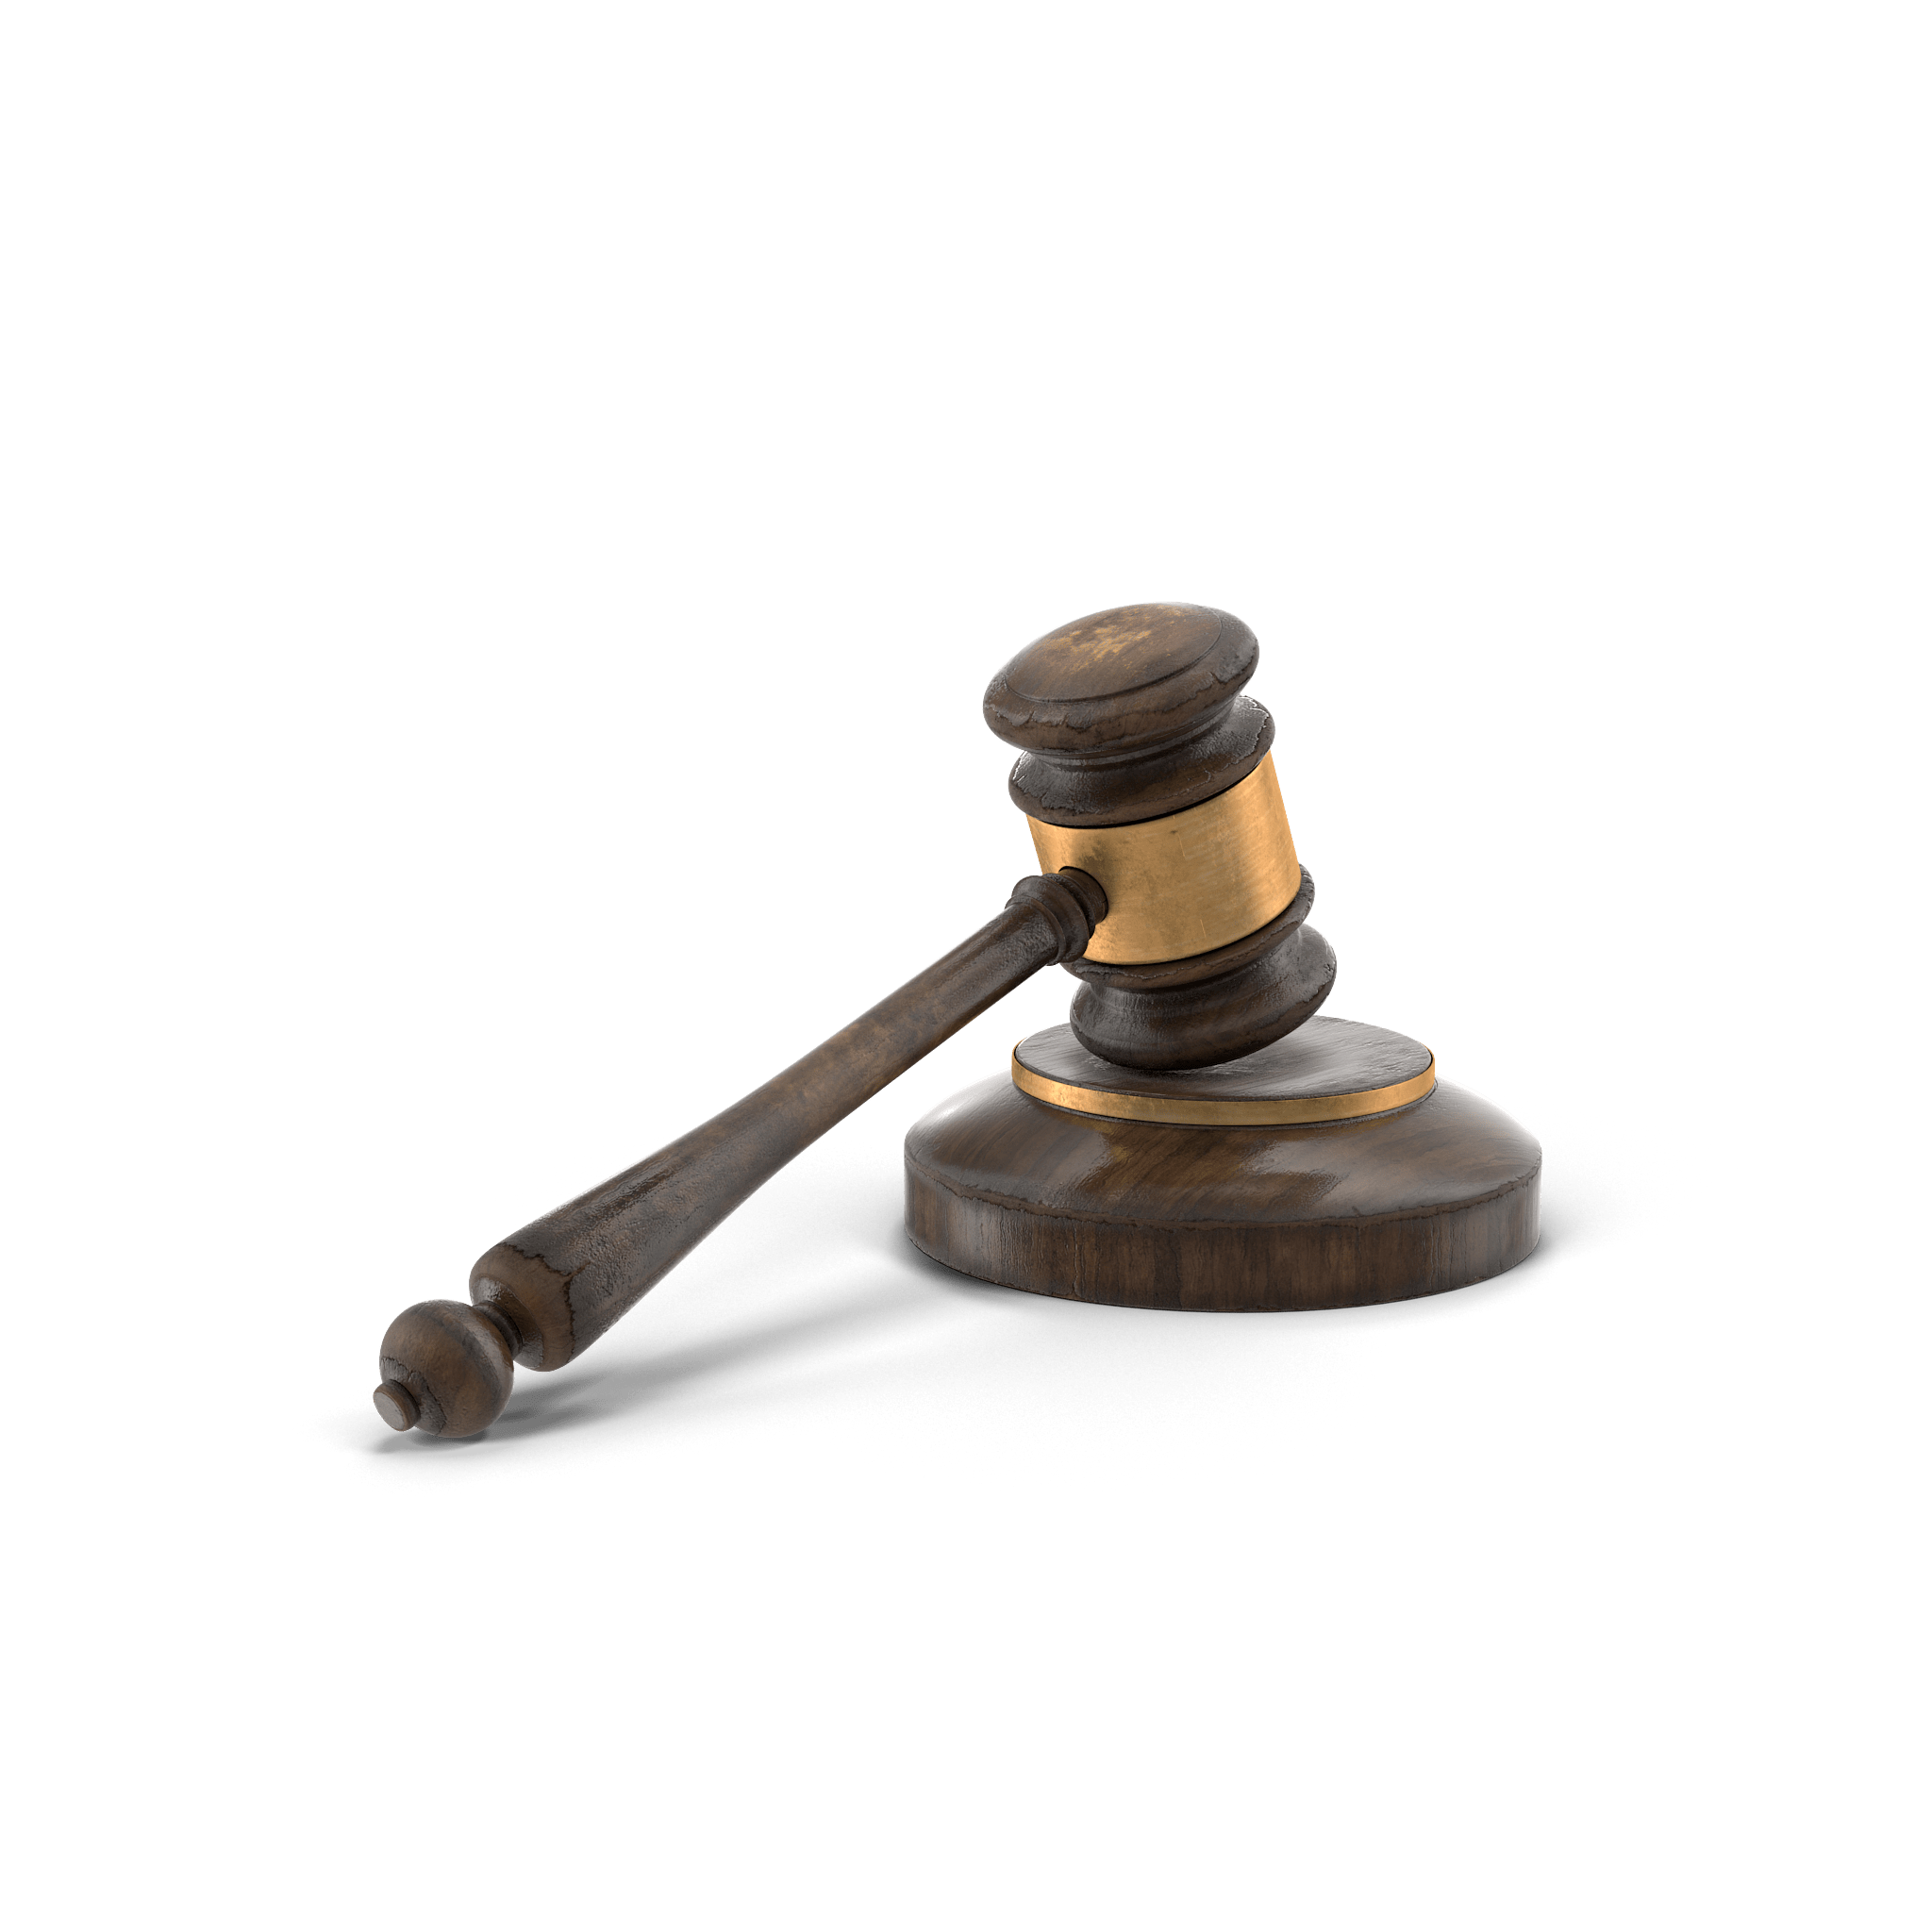 Wooden-Gavel.H03.2k-min (1)